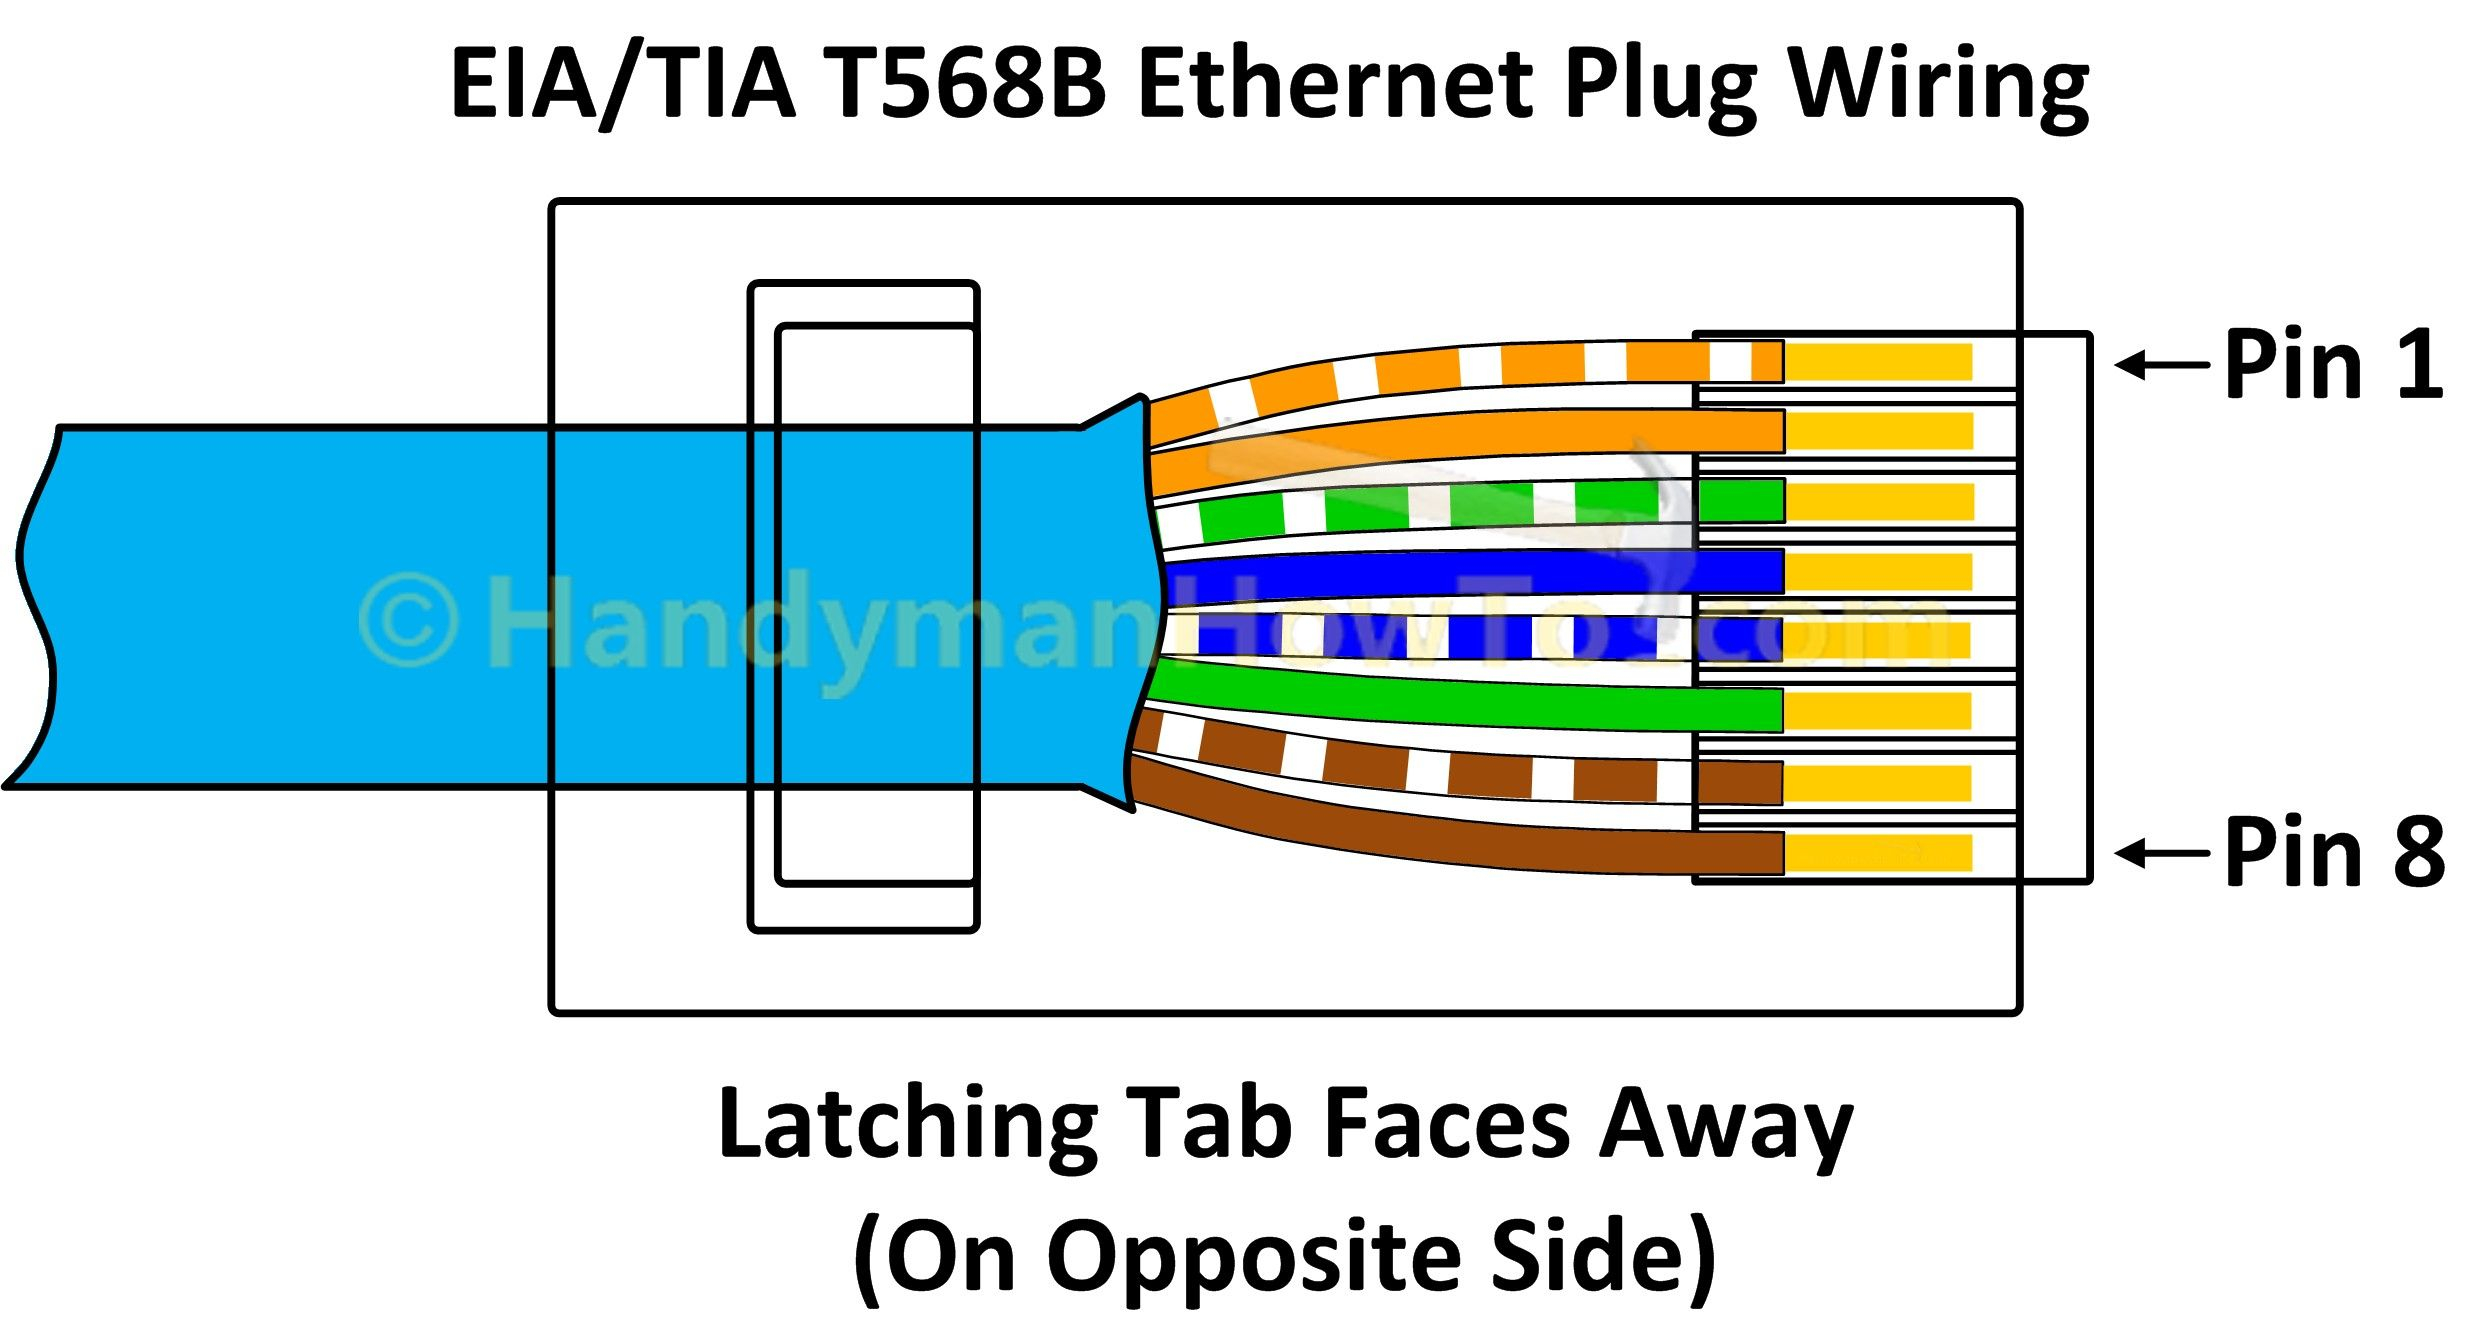 568 B Wiring Diagram In 2020 | Network Cable, Ethernet